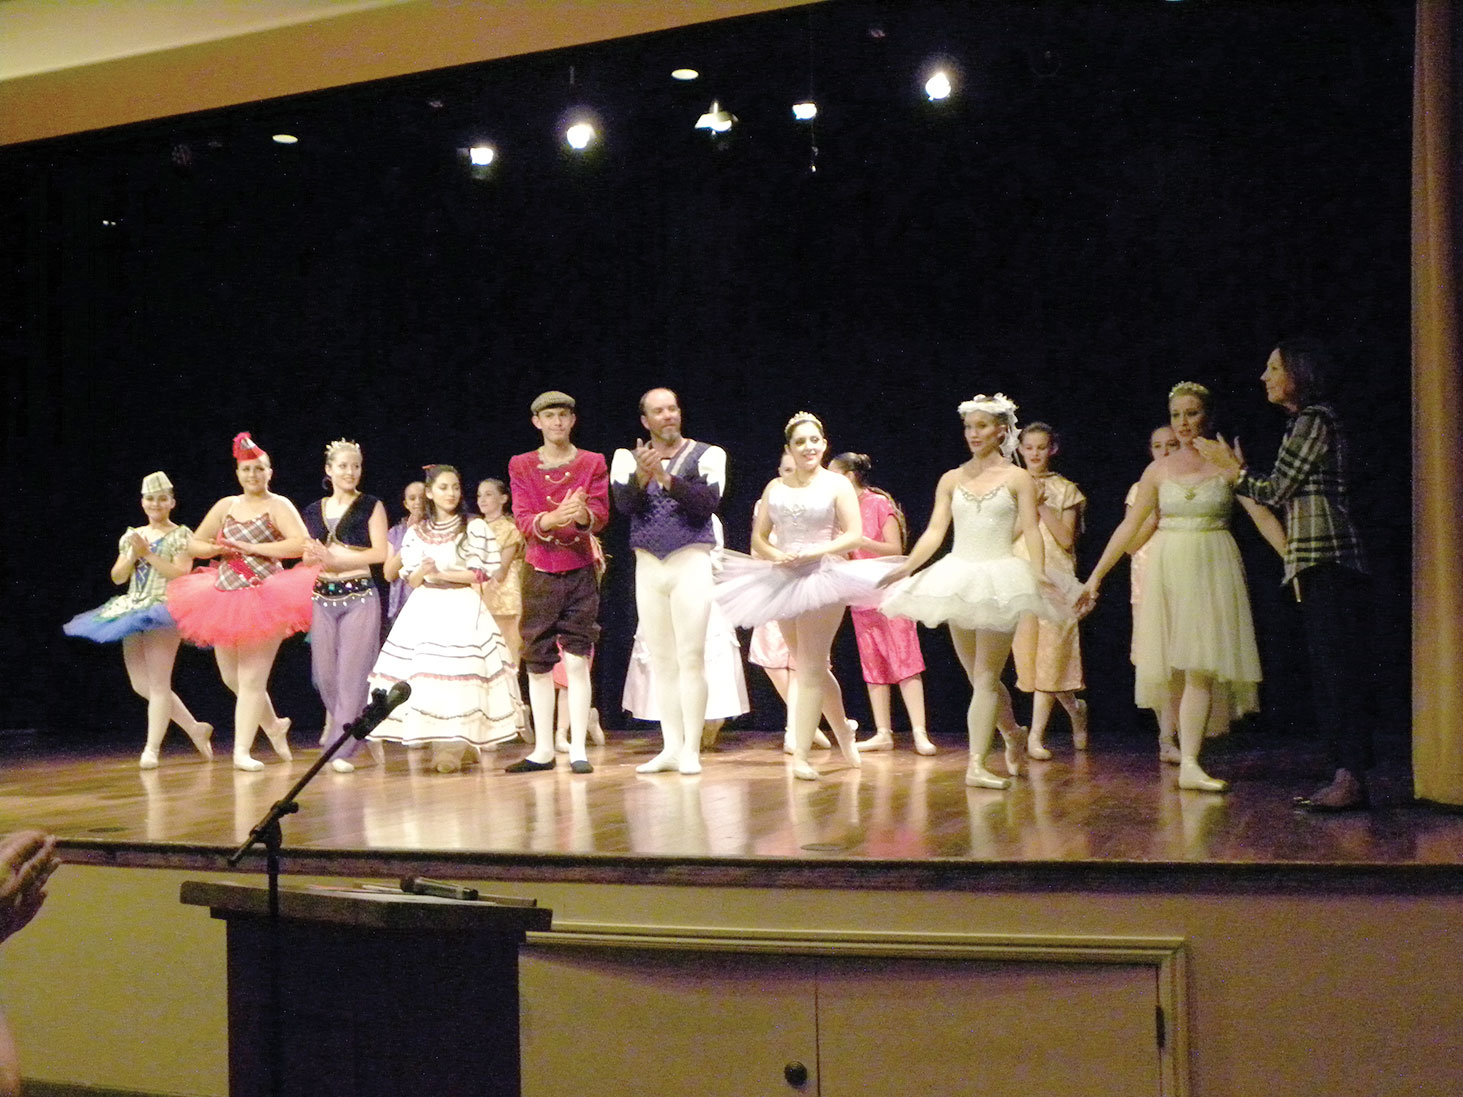 Members of Ballet Continental perform for The Women of Quail Creek during their November program; photo by Julie Ratley